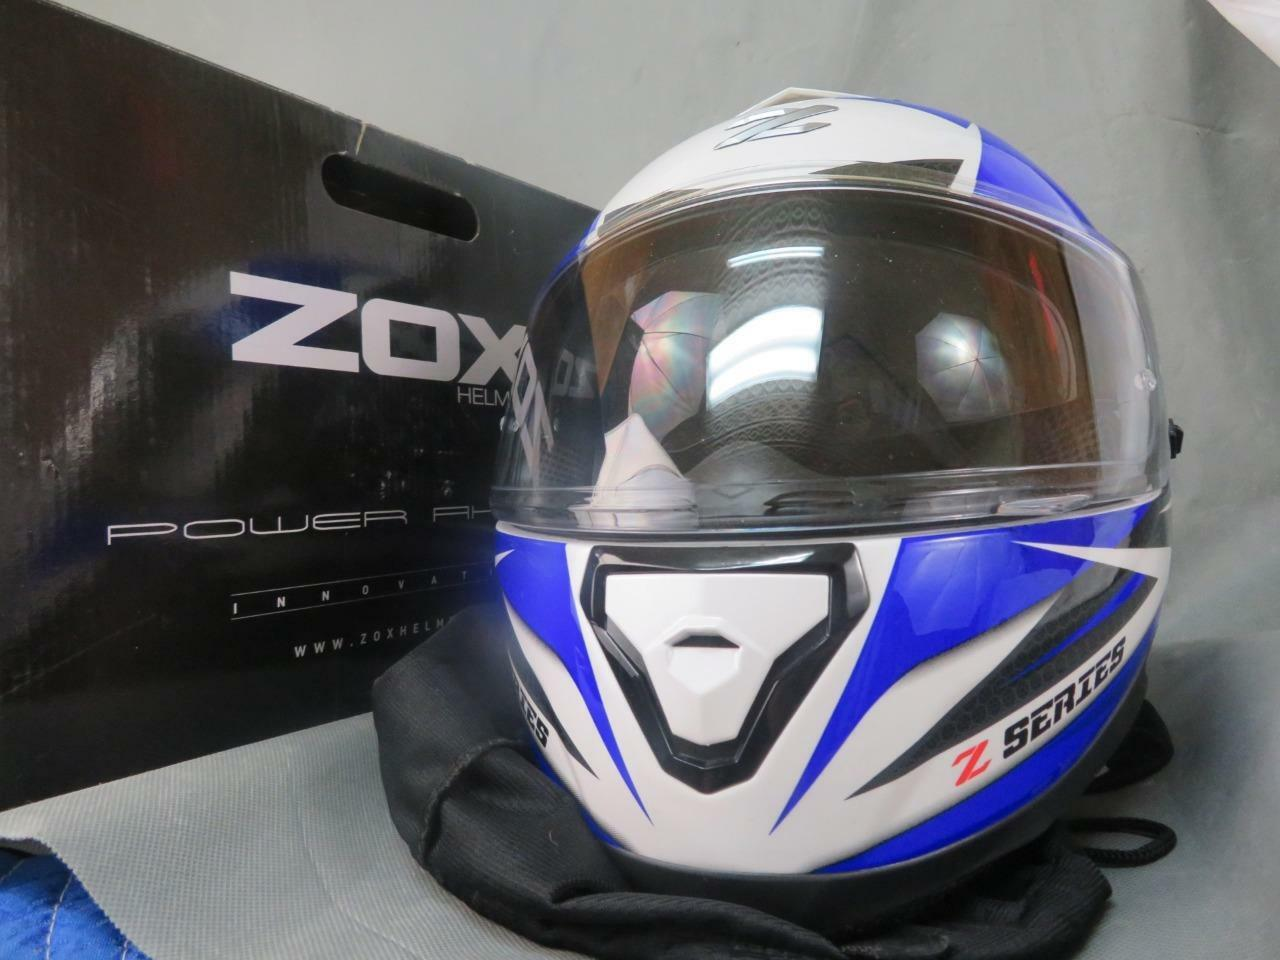 ZOX Z-FF10 Dawn bluee XL Full Face Helmet   USED in box  online discount